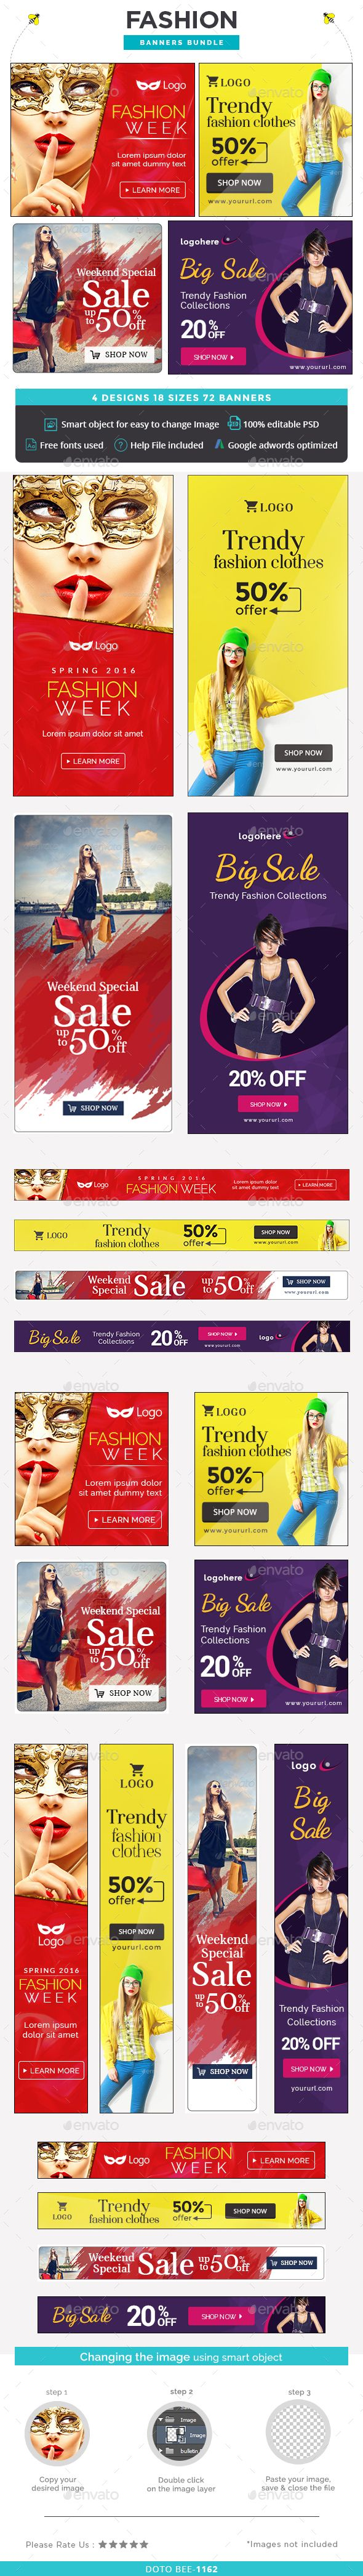 Fashion Web Banners Bundle - 4 Sets Template PSD. Download here: http://graphicriver.net/item/fashion-banners-bundle-4-sets/15015941?ref=ksioks